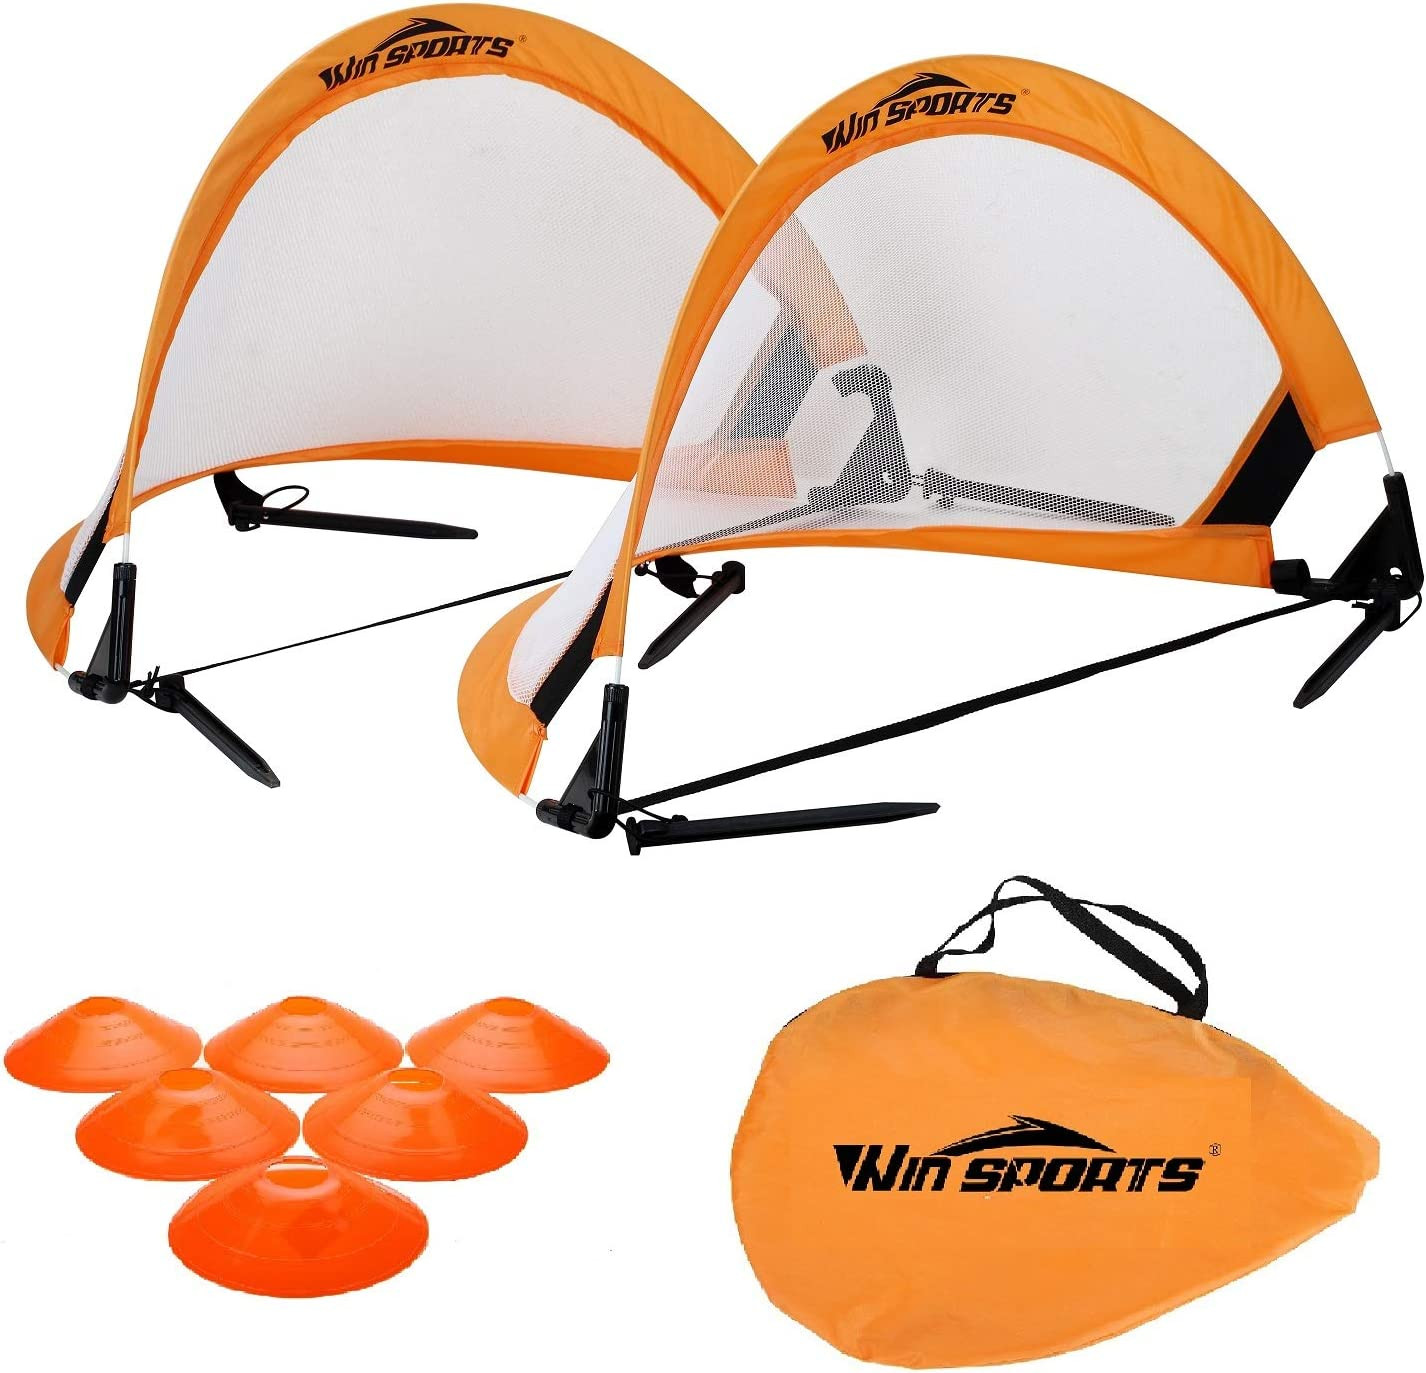 Win SPORTS Pro Foldable Pop Up Soccer Goal - 2 Portable Soccer Nets with Carrying Case and Training Cones